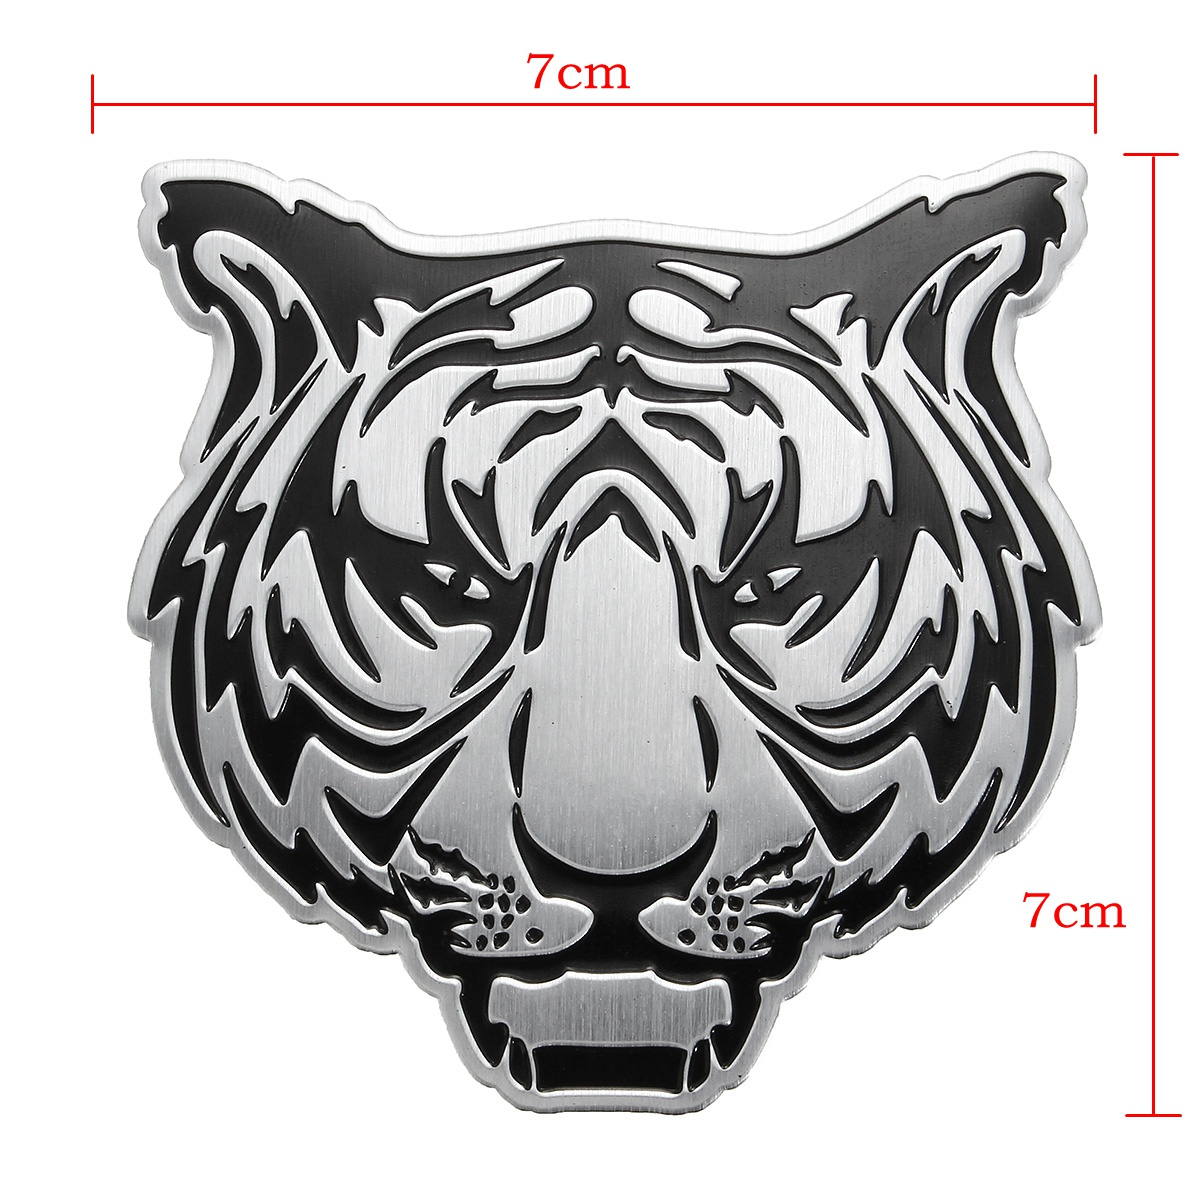 3D DIY Silver Animals Head Metal Logo Sticker Car Motorcycle Badge Emblem Decals